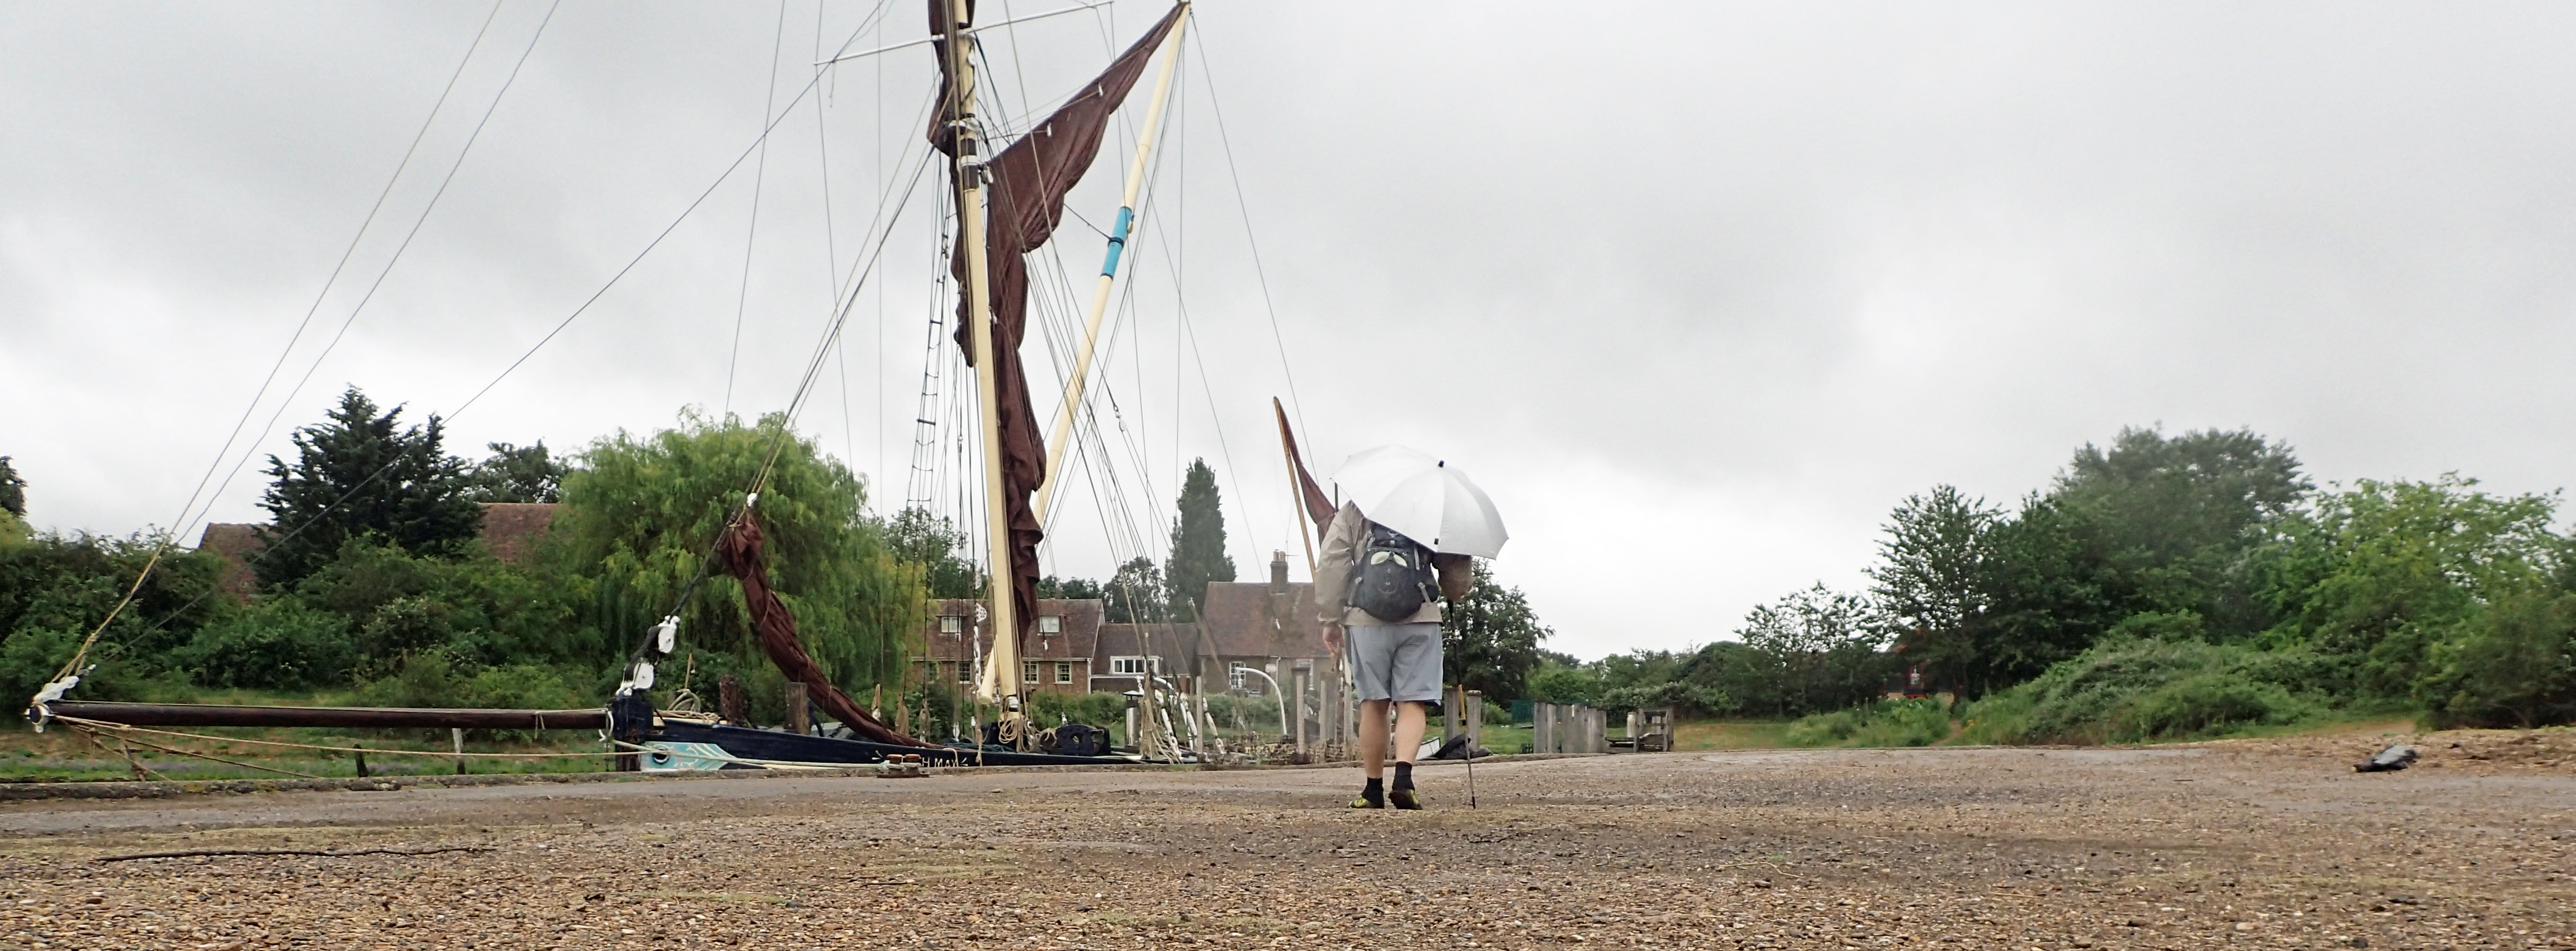 Passing the Edith May moored at the empty dock at Lower Halstow, rain fell steadily